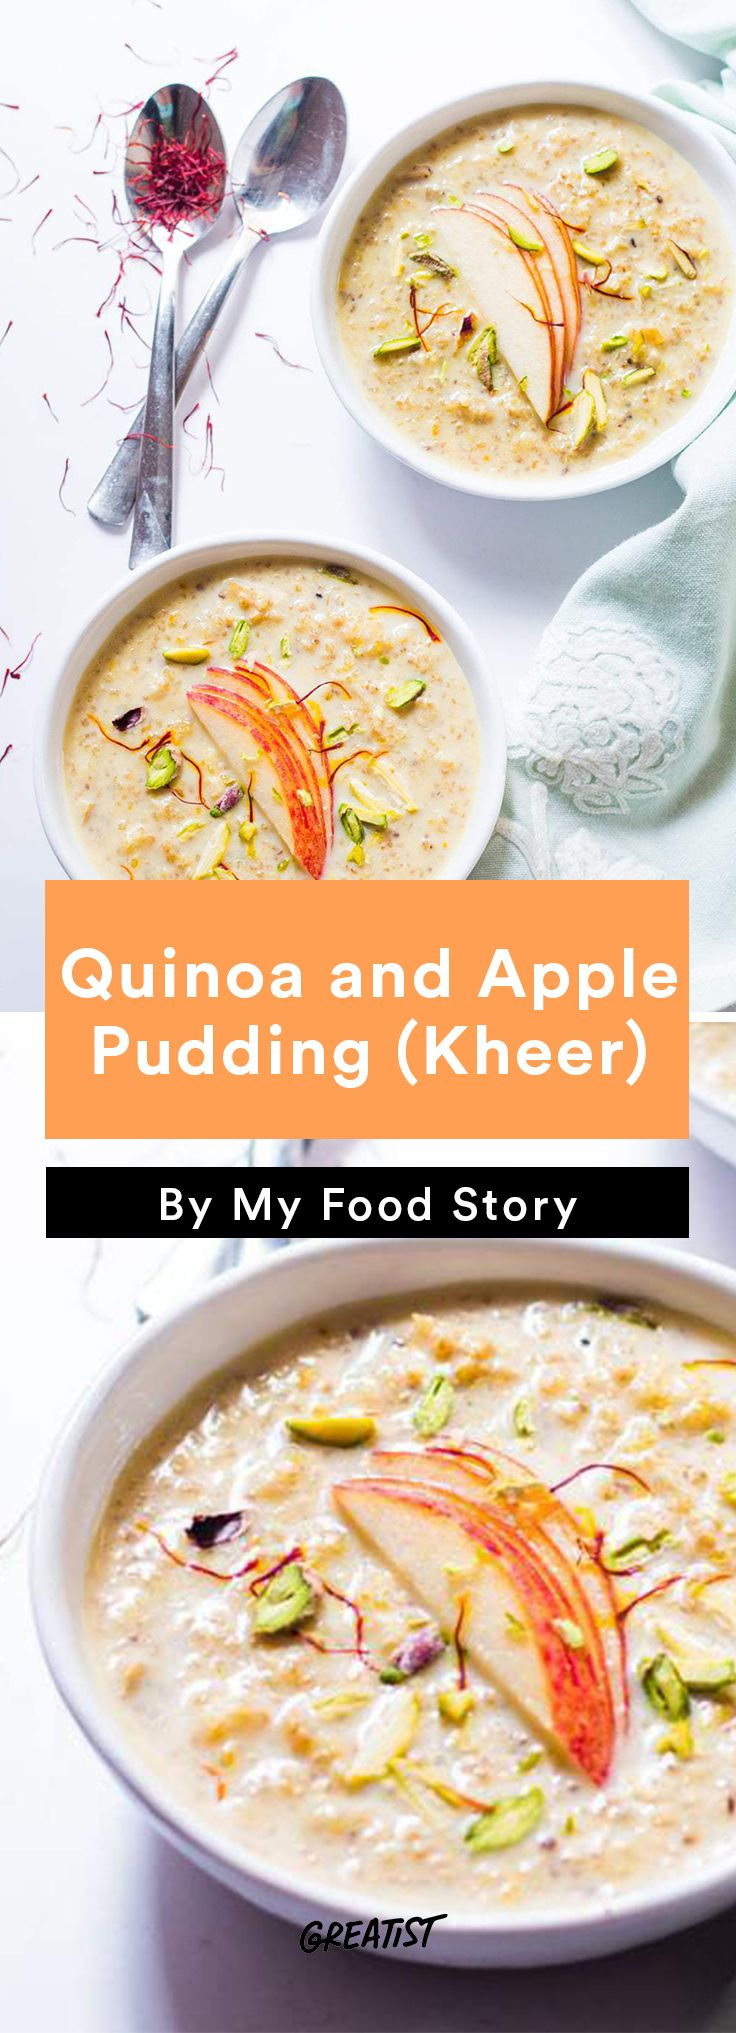 1. Quinoa and Apple Pudding (Kheer) #healthy #indian #food http://greatist.com/eat/indian-recipes-that-are-easy-to-make-at-home